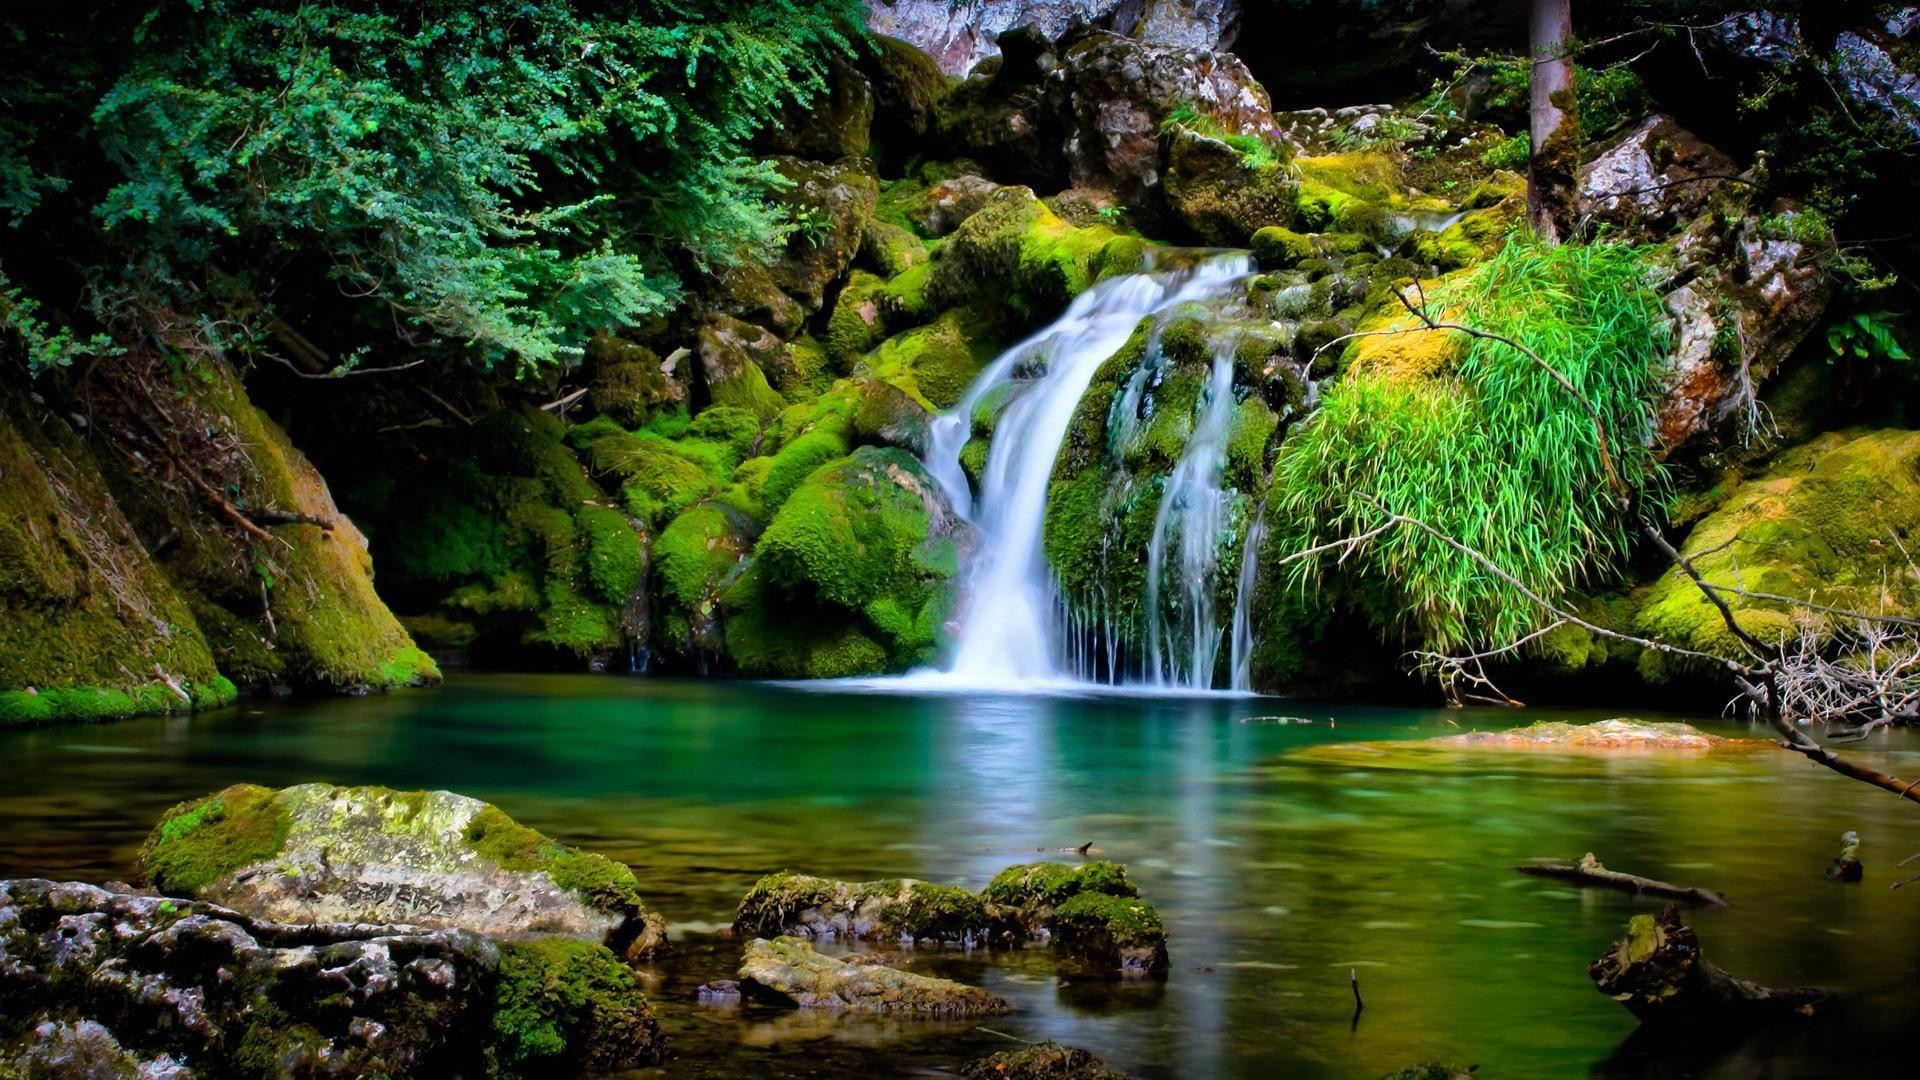 HD Wallpaper Nature Water